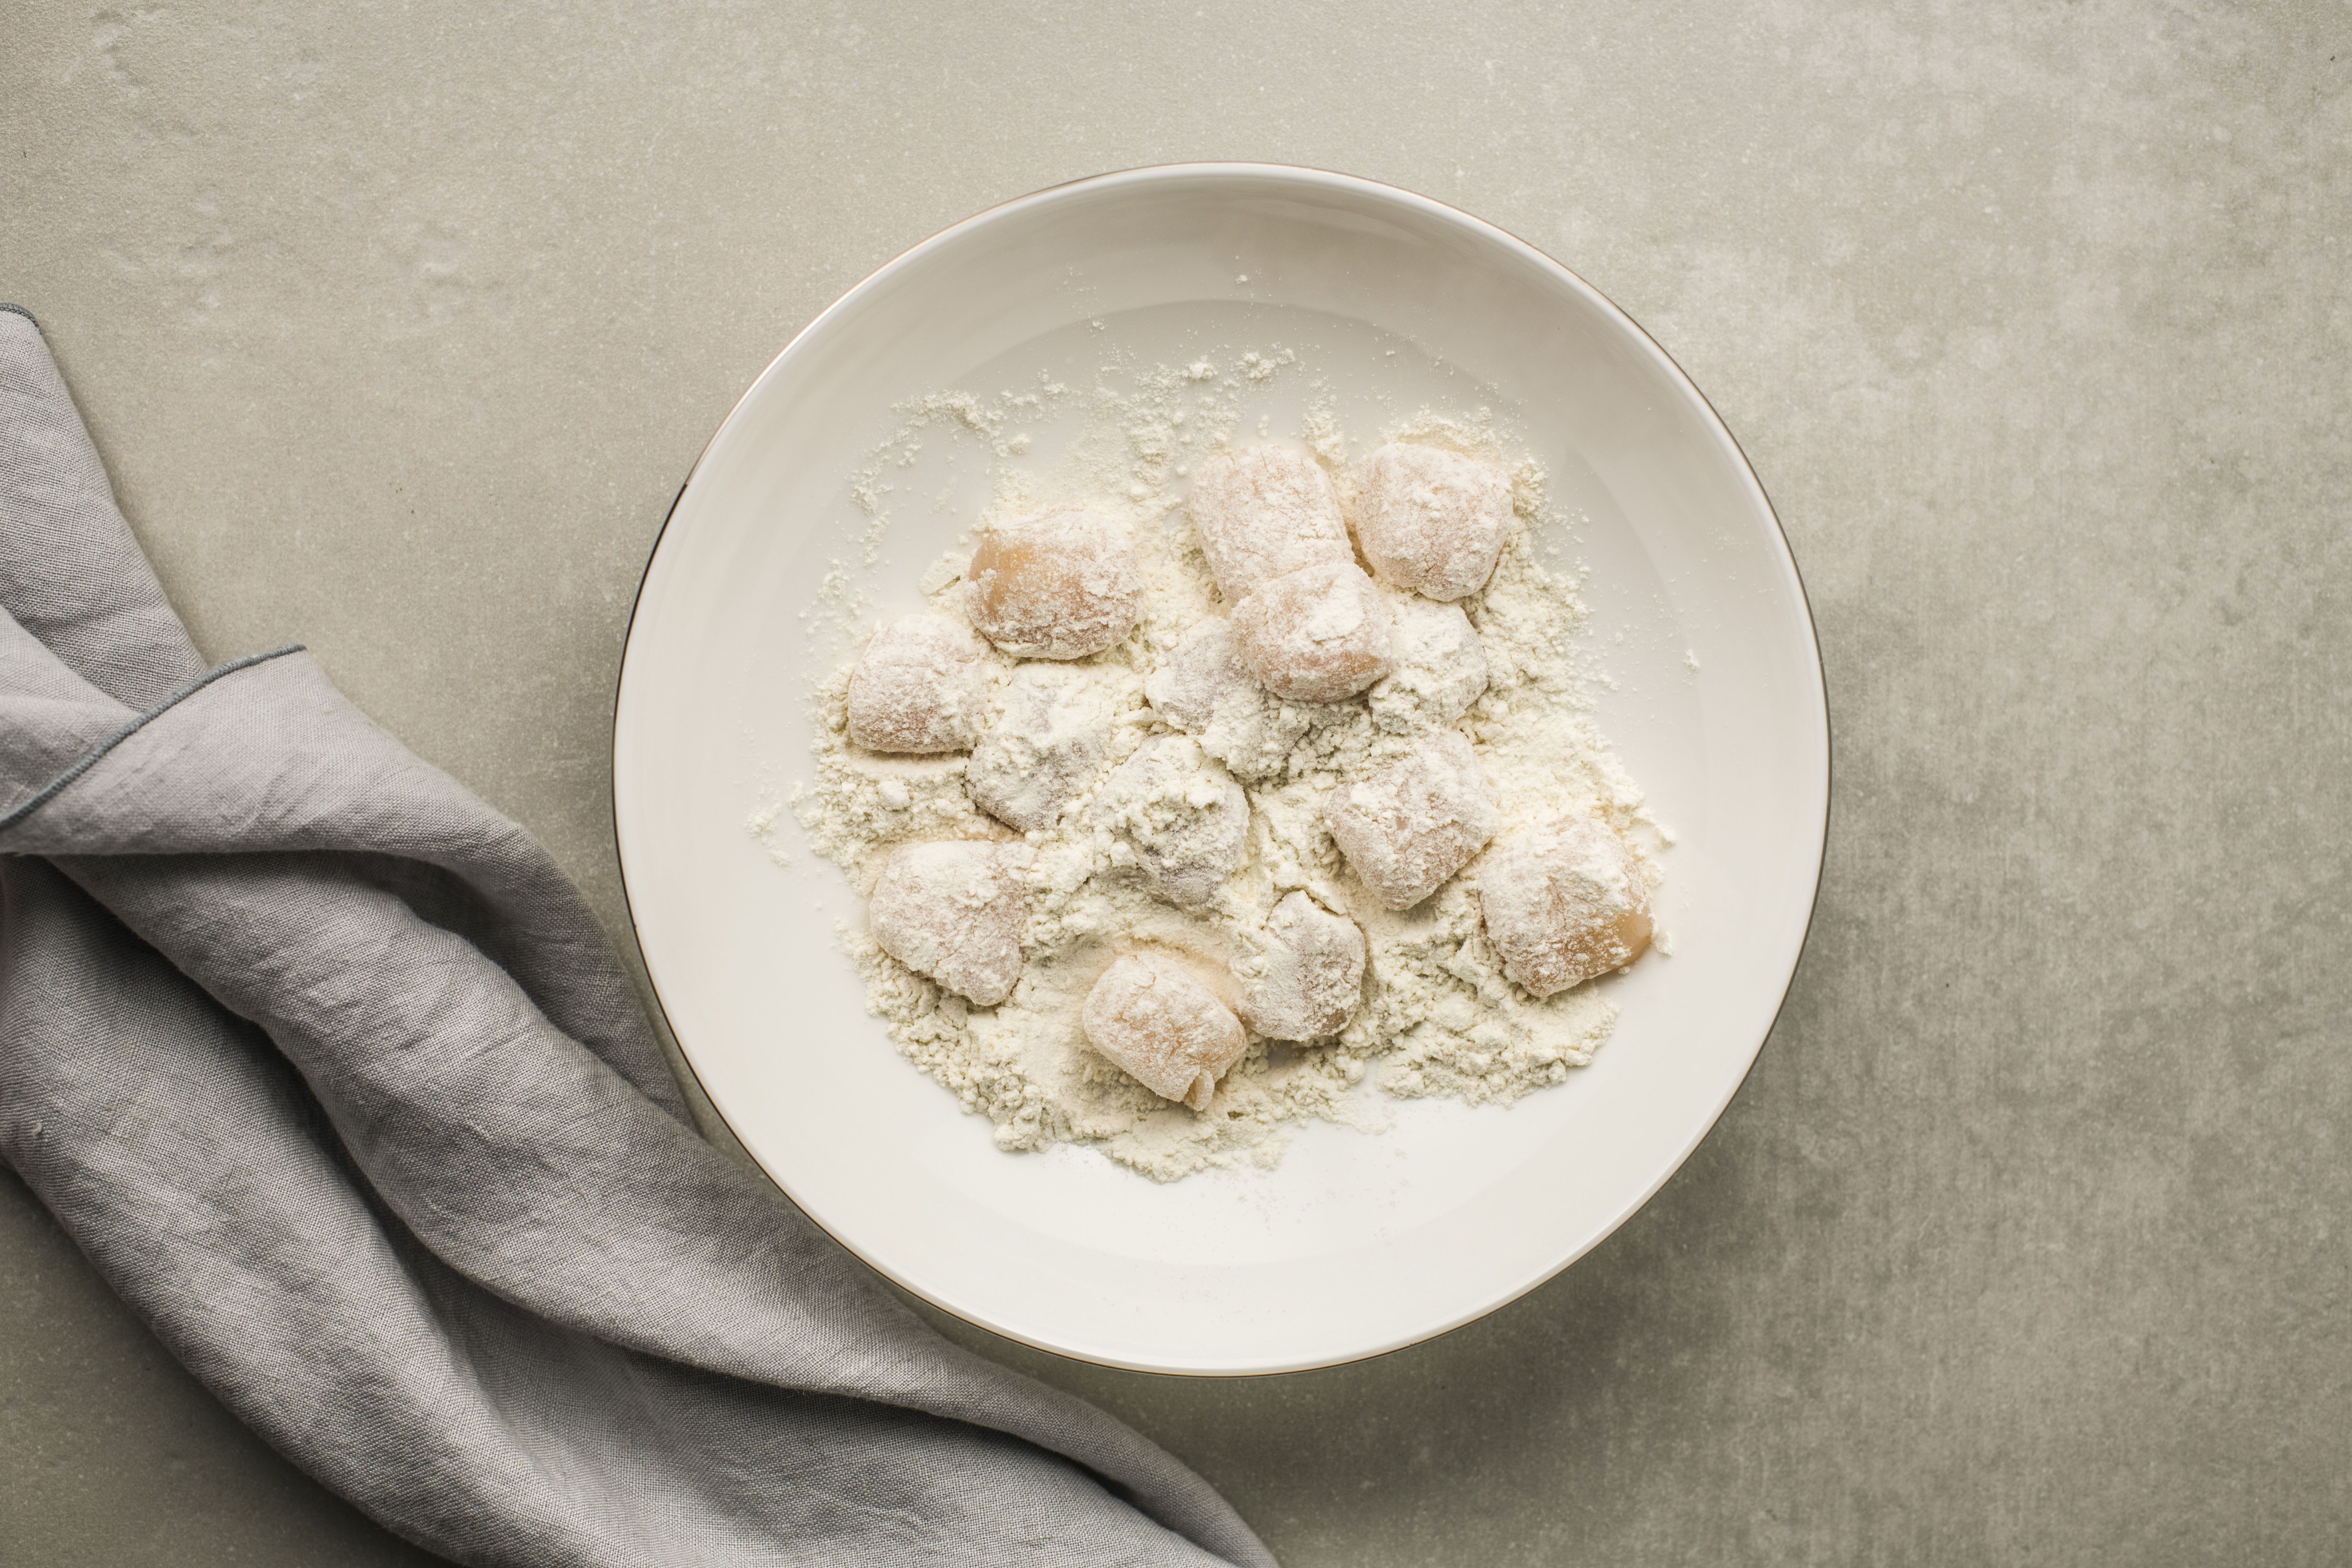 Scallops coated with flour in a bowl